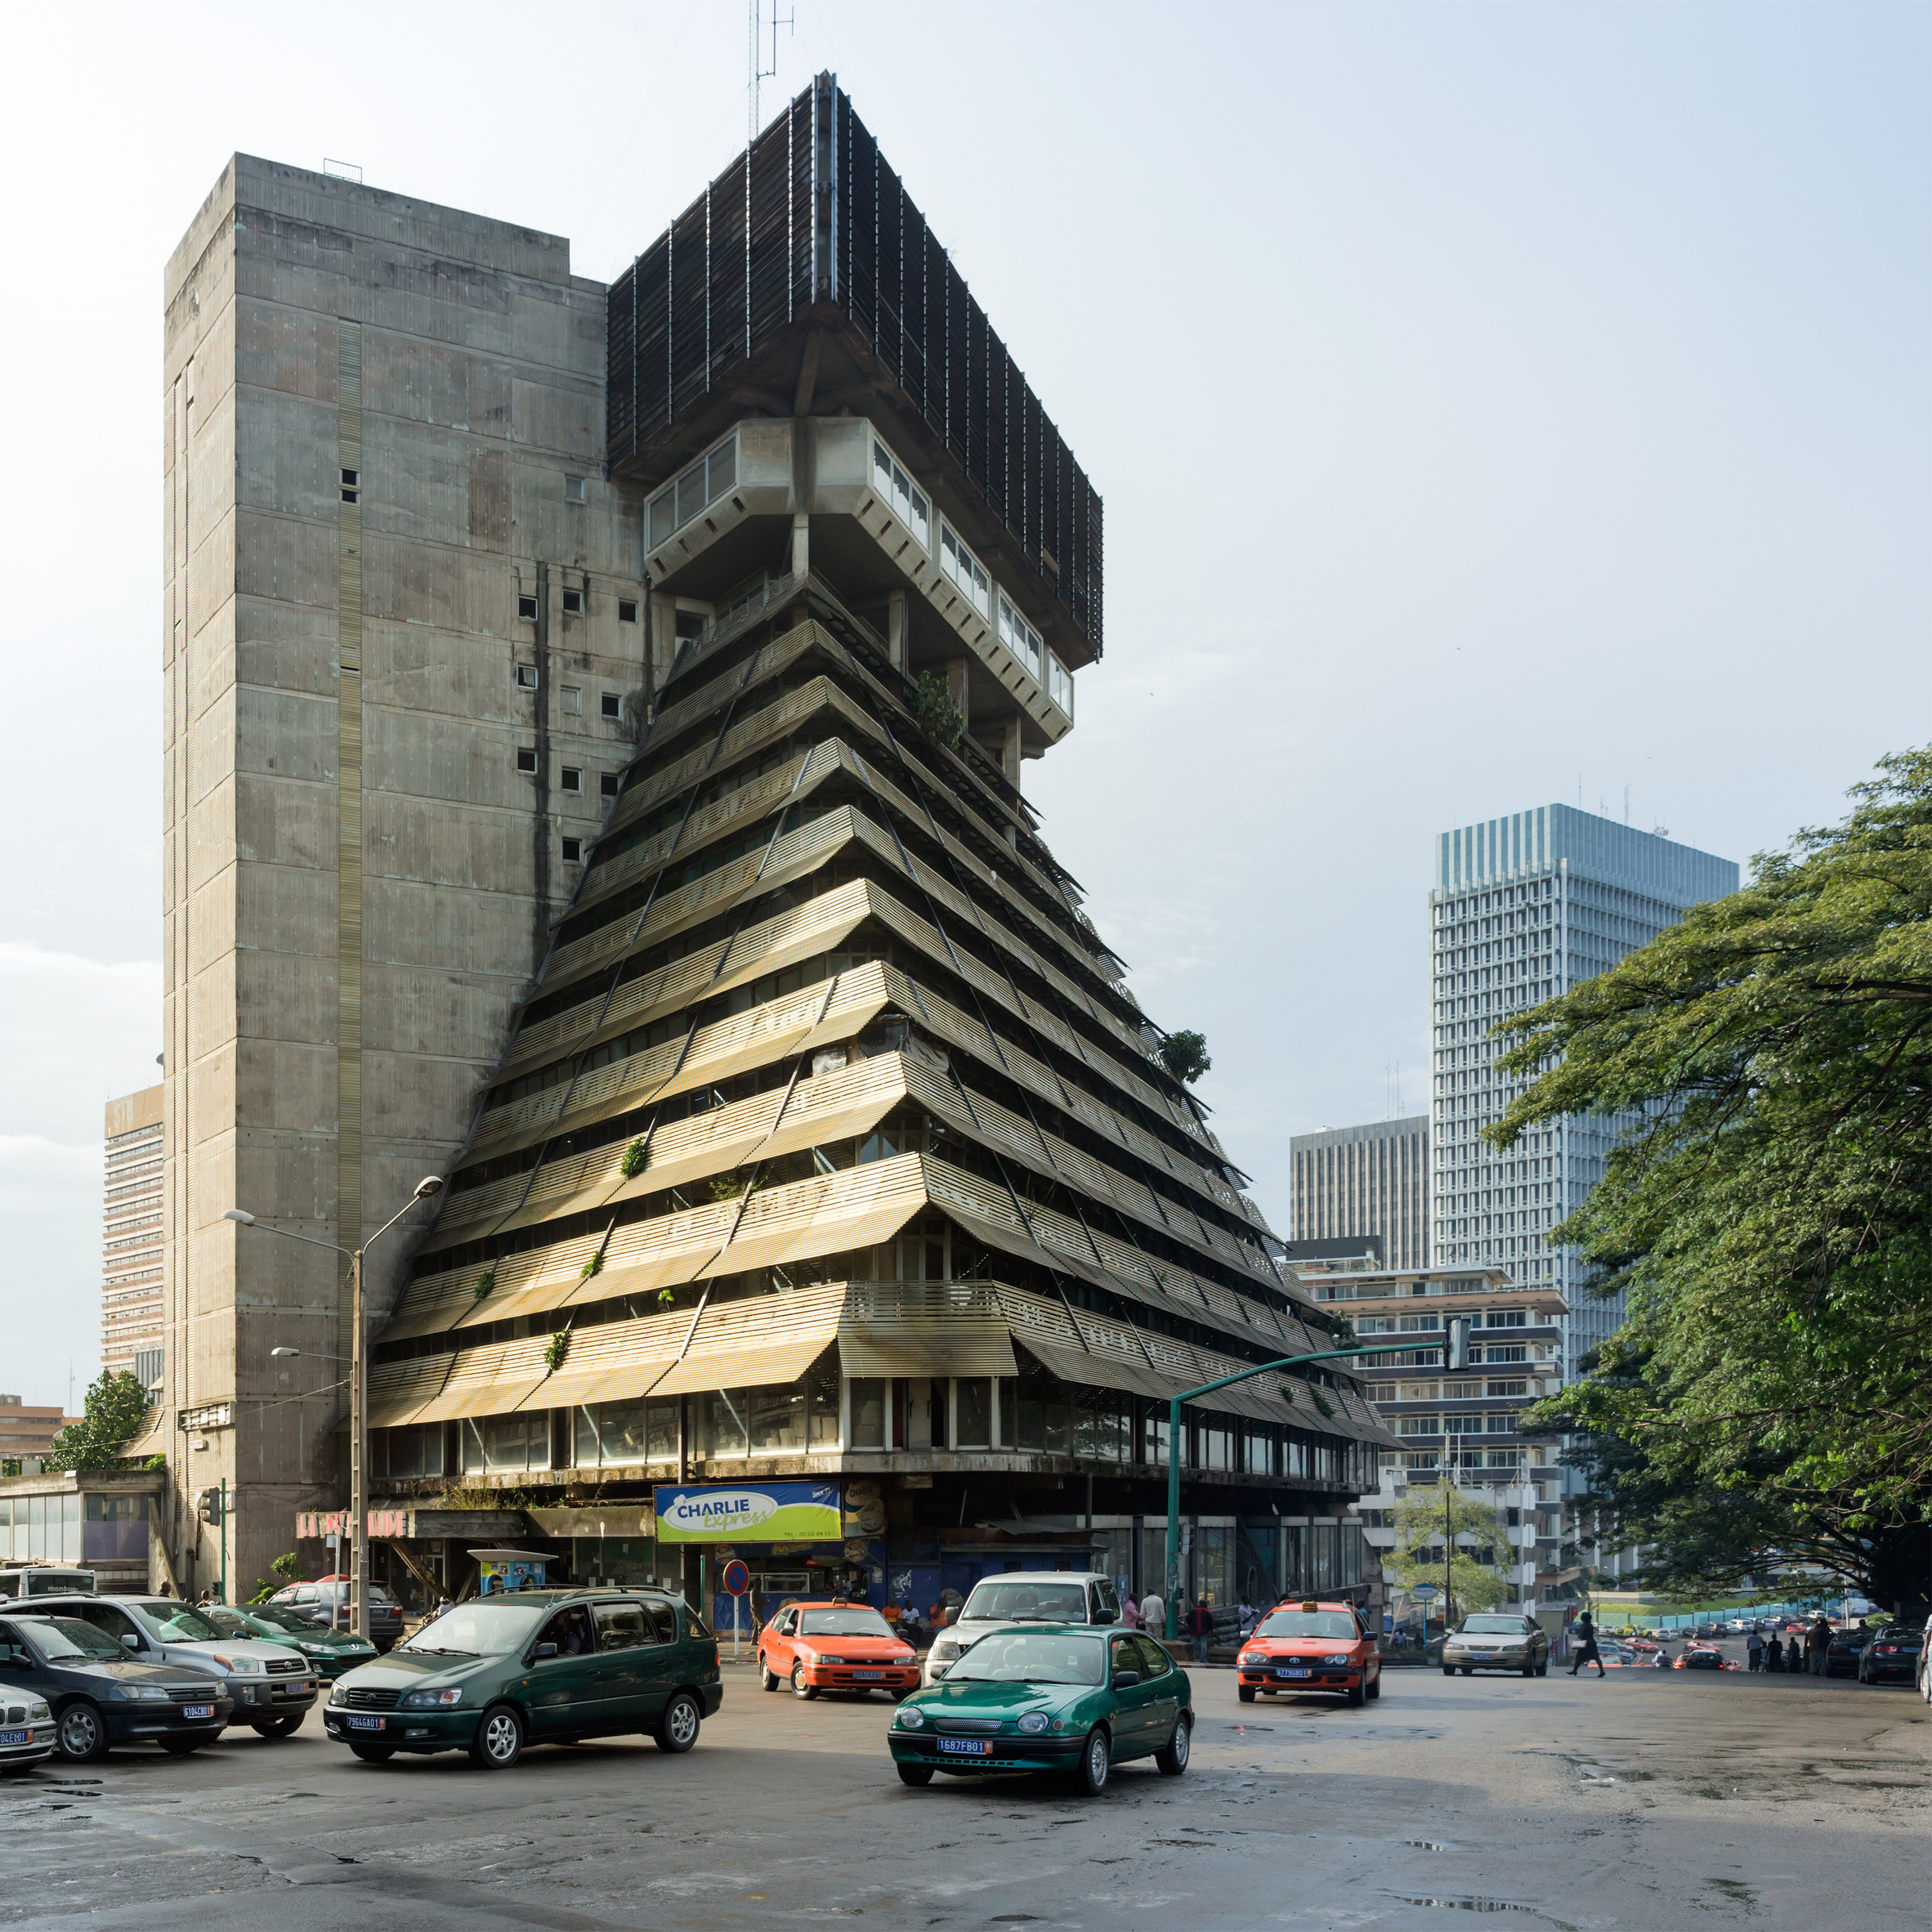 exhibition reveals role of modernist architecture in liberated african nations - Modern Architecture Exhibition